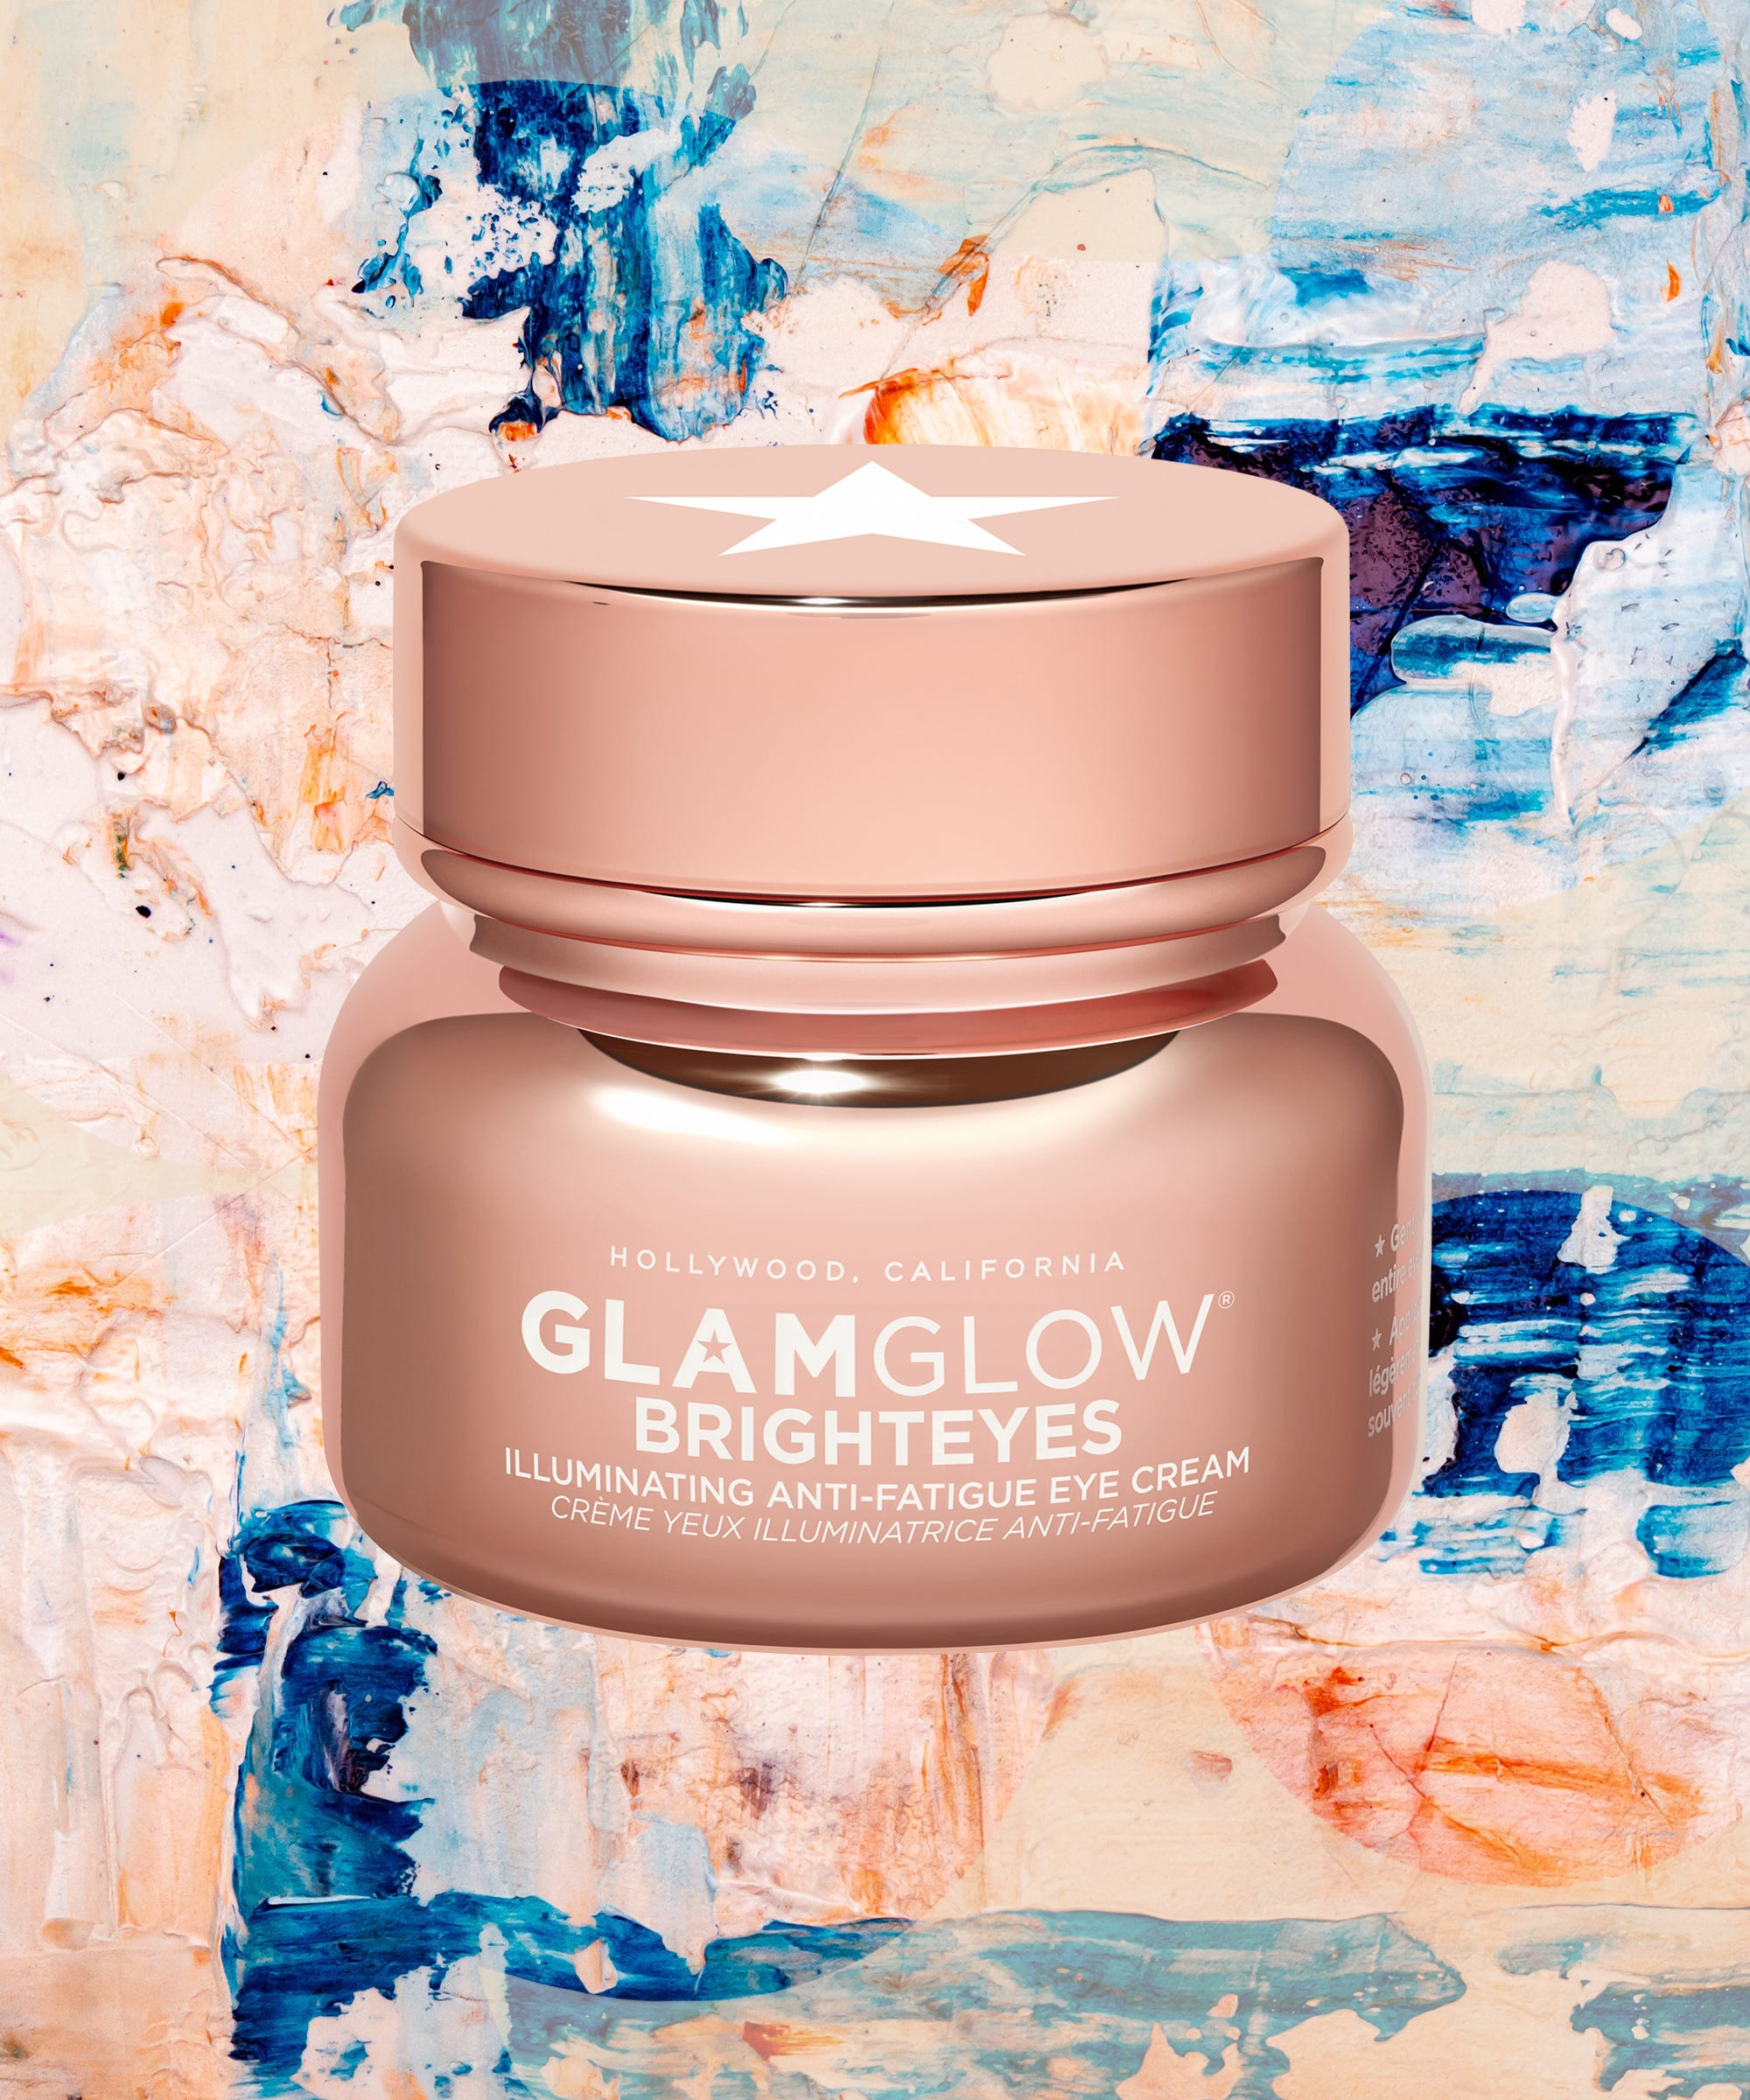 Glamglow's New Eye Cream Sold Out In 48 Hours